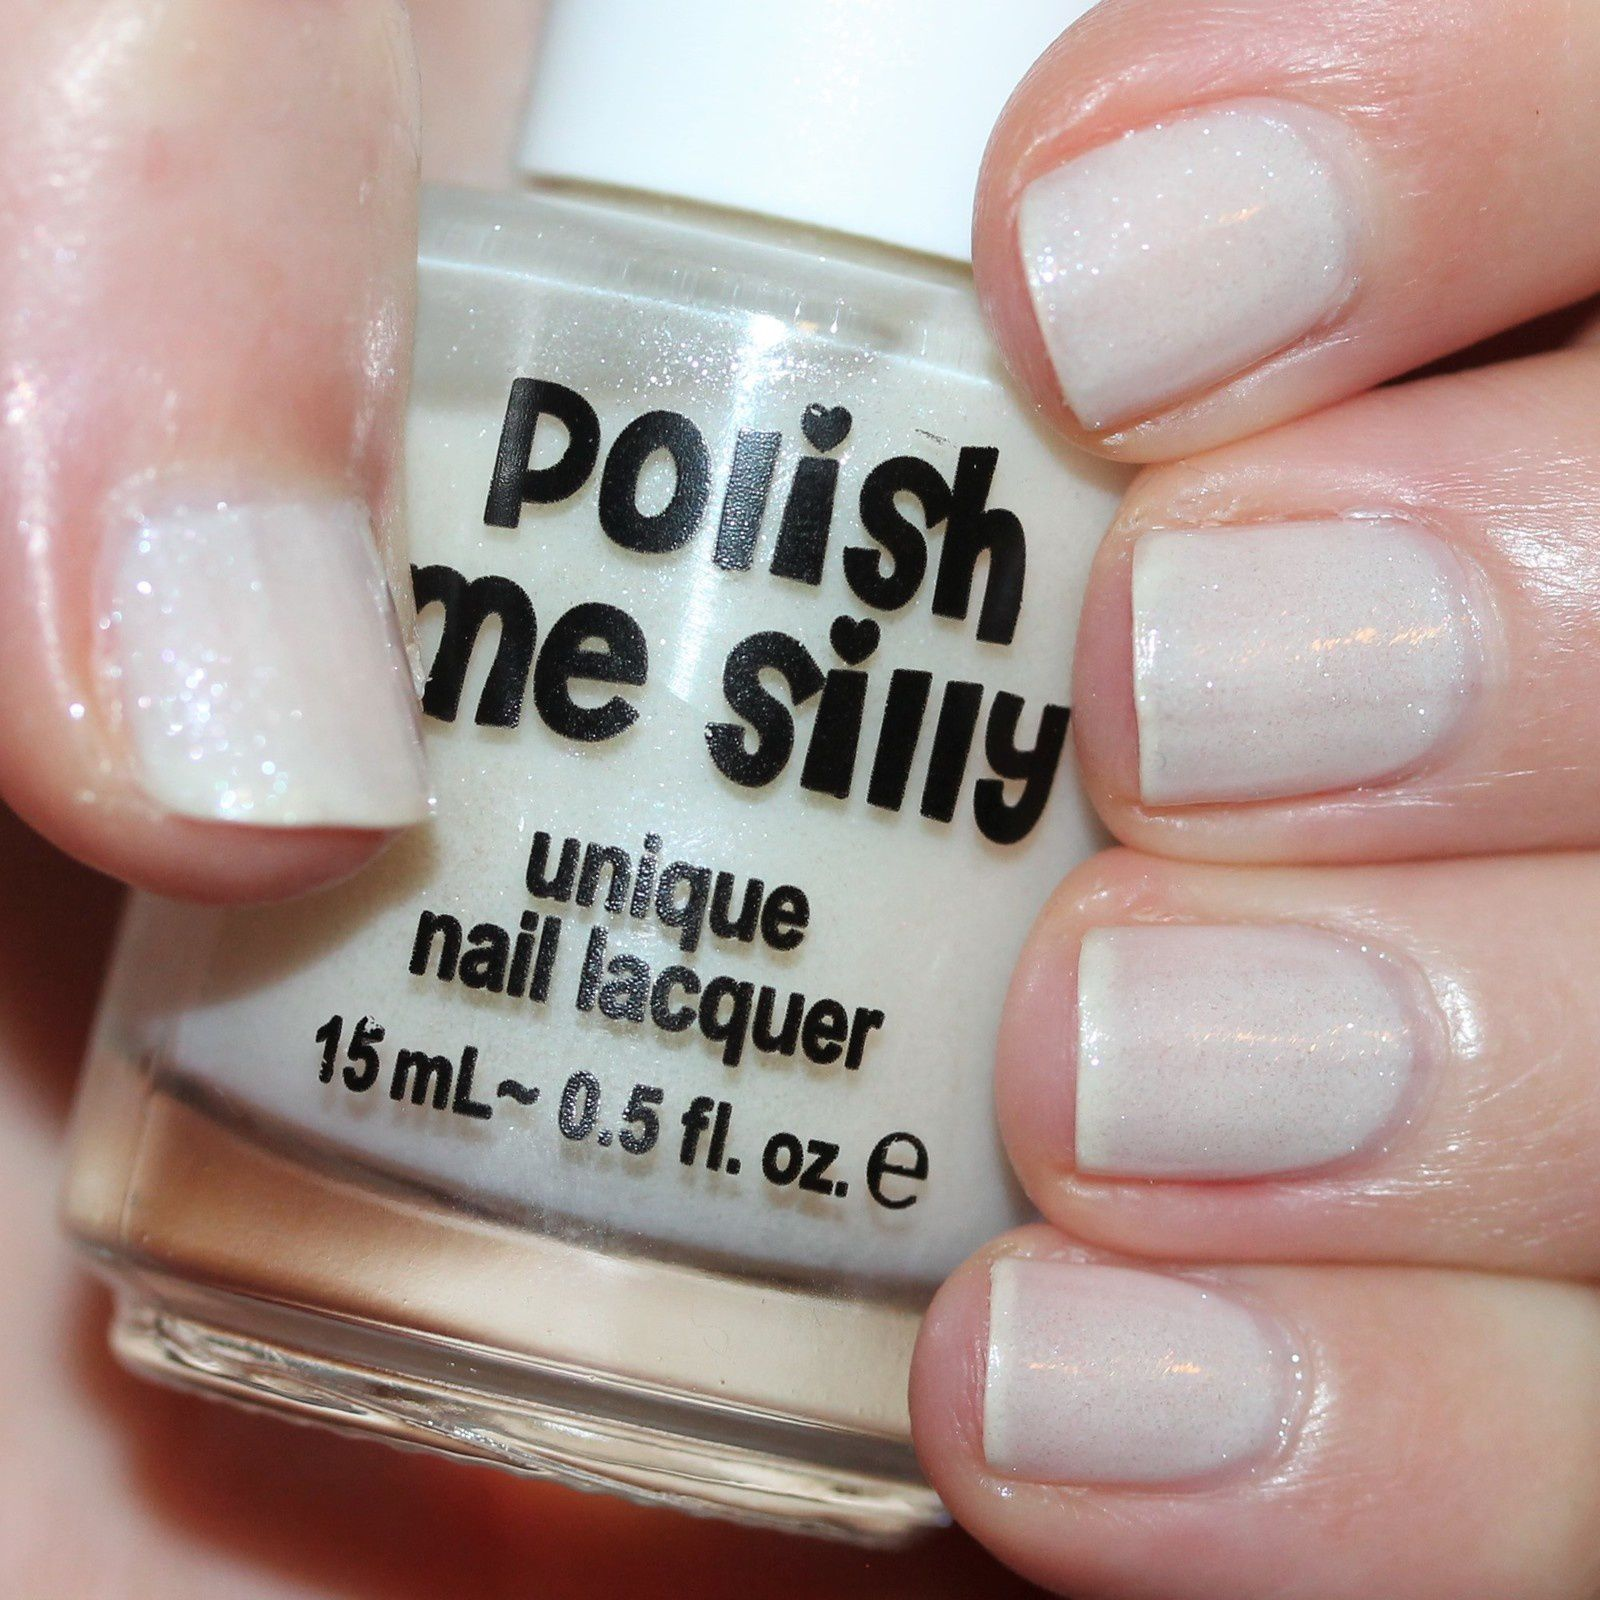 Essie Protein Base Coat / Polish Me Silly Blissful Moments / Essie Gel Top Coat